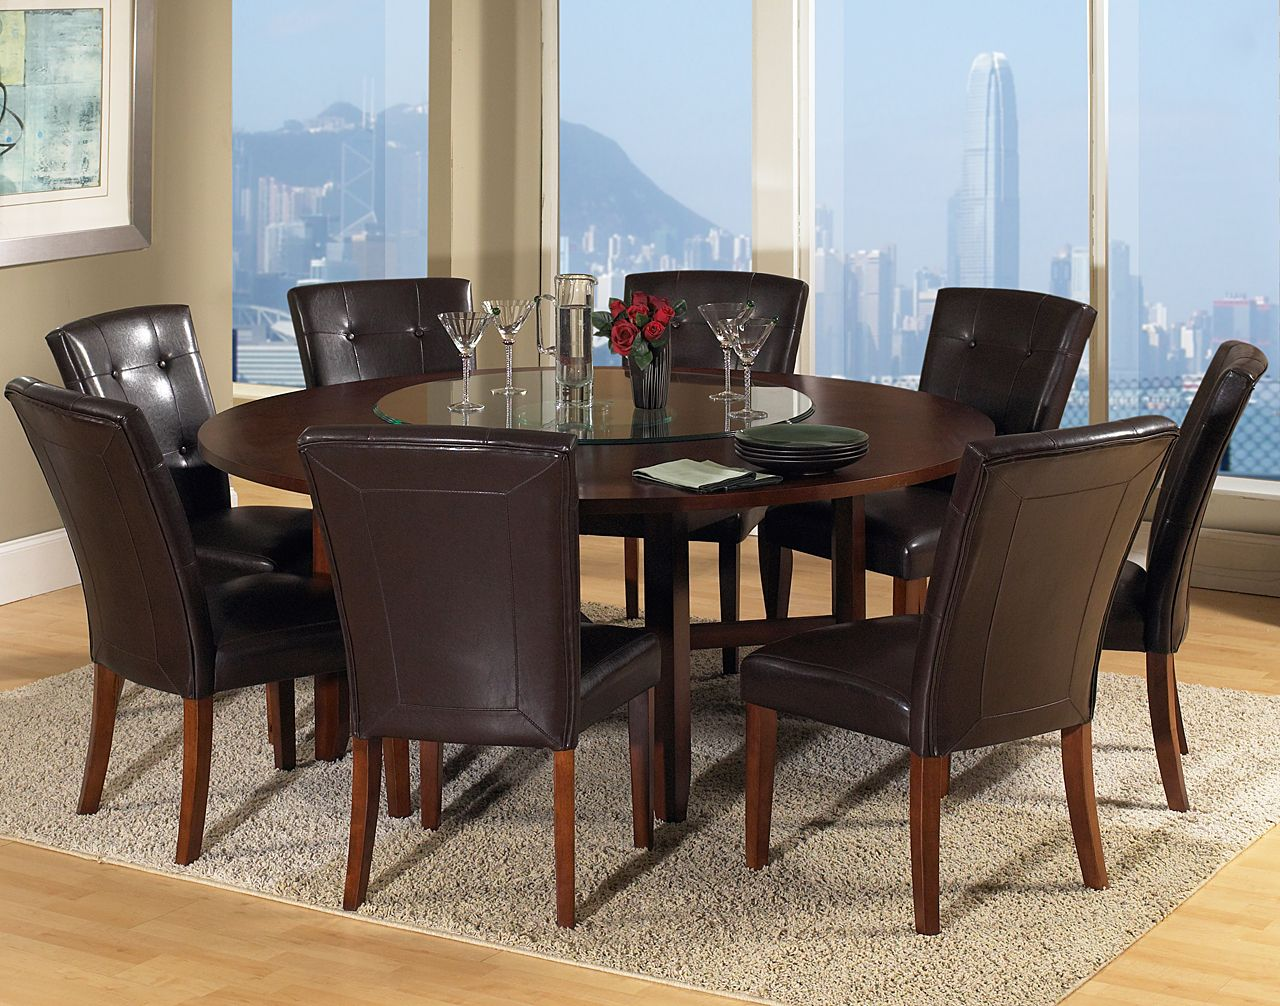 Round Dining Table For 8 People Comedor Redonda Decoracion Del